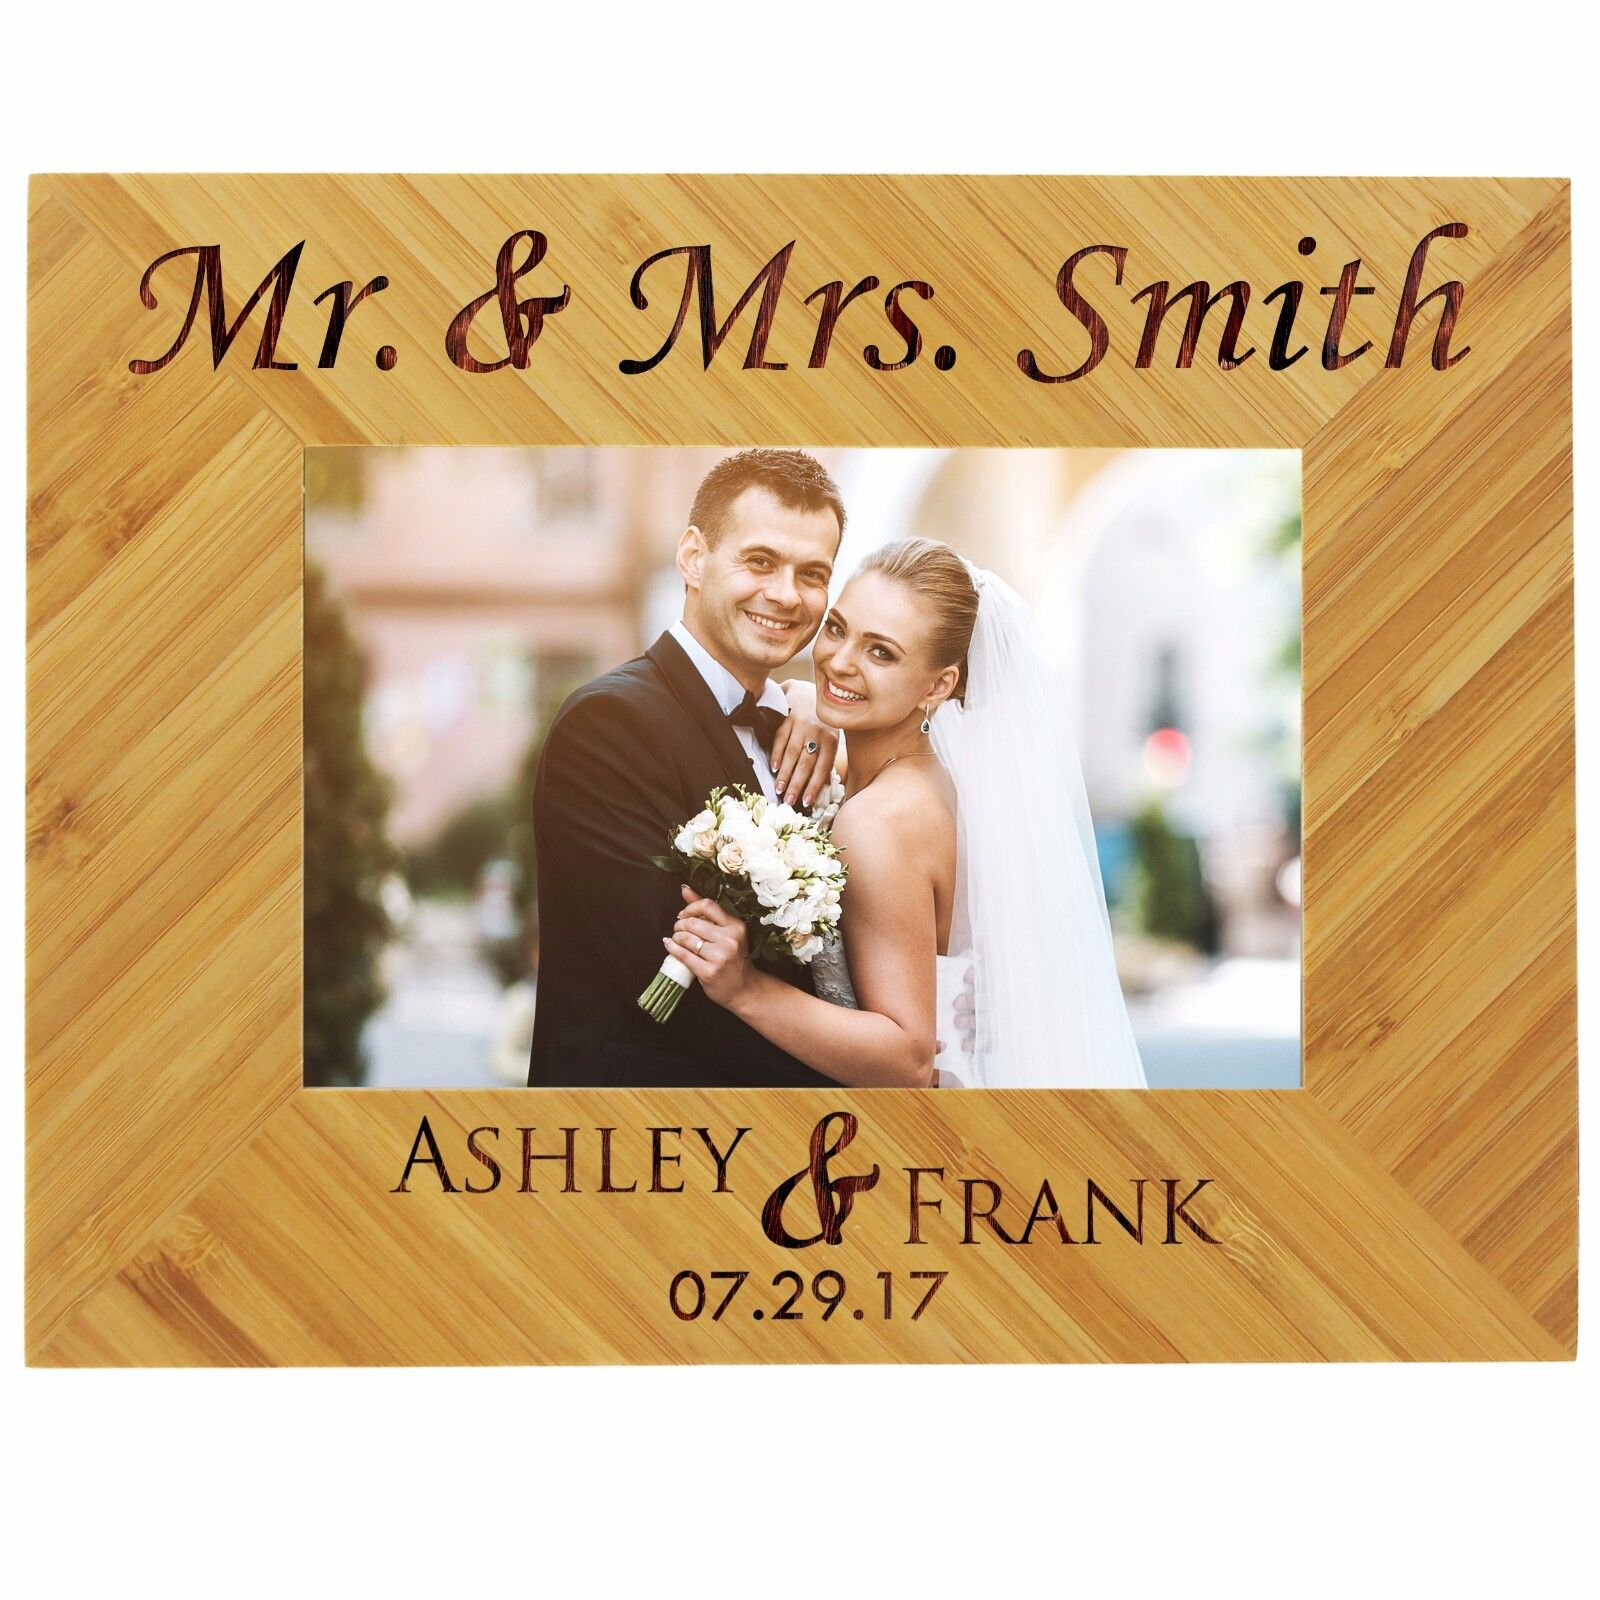 Custom Engraved 5x7 Picture Wedding Frame For Newlywed